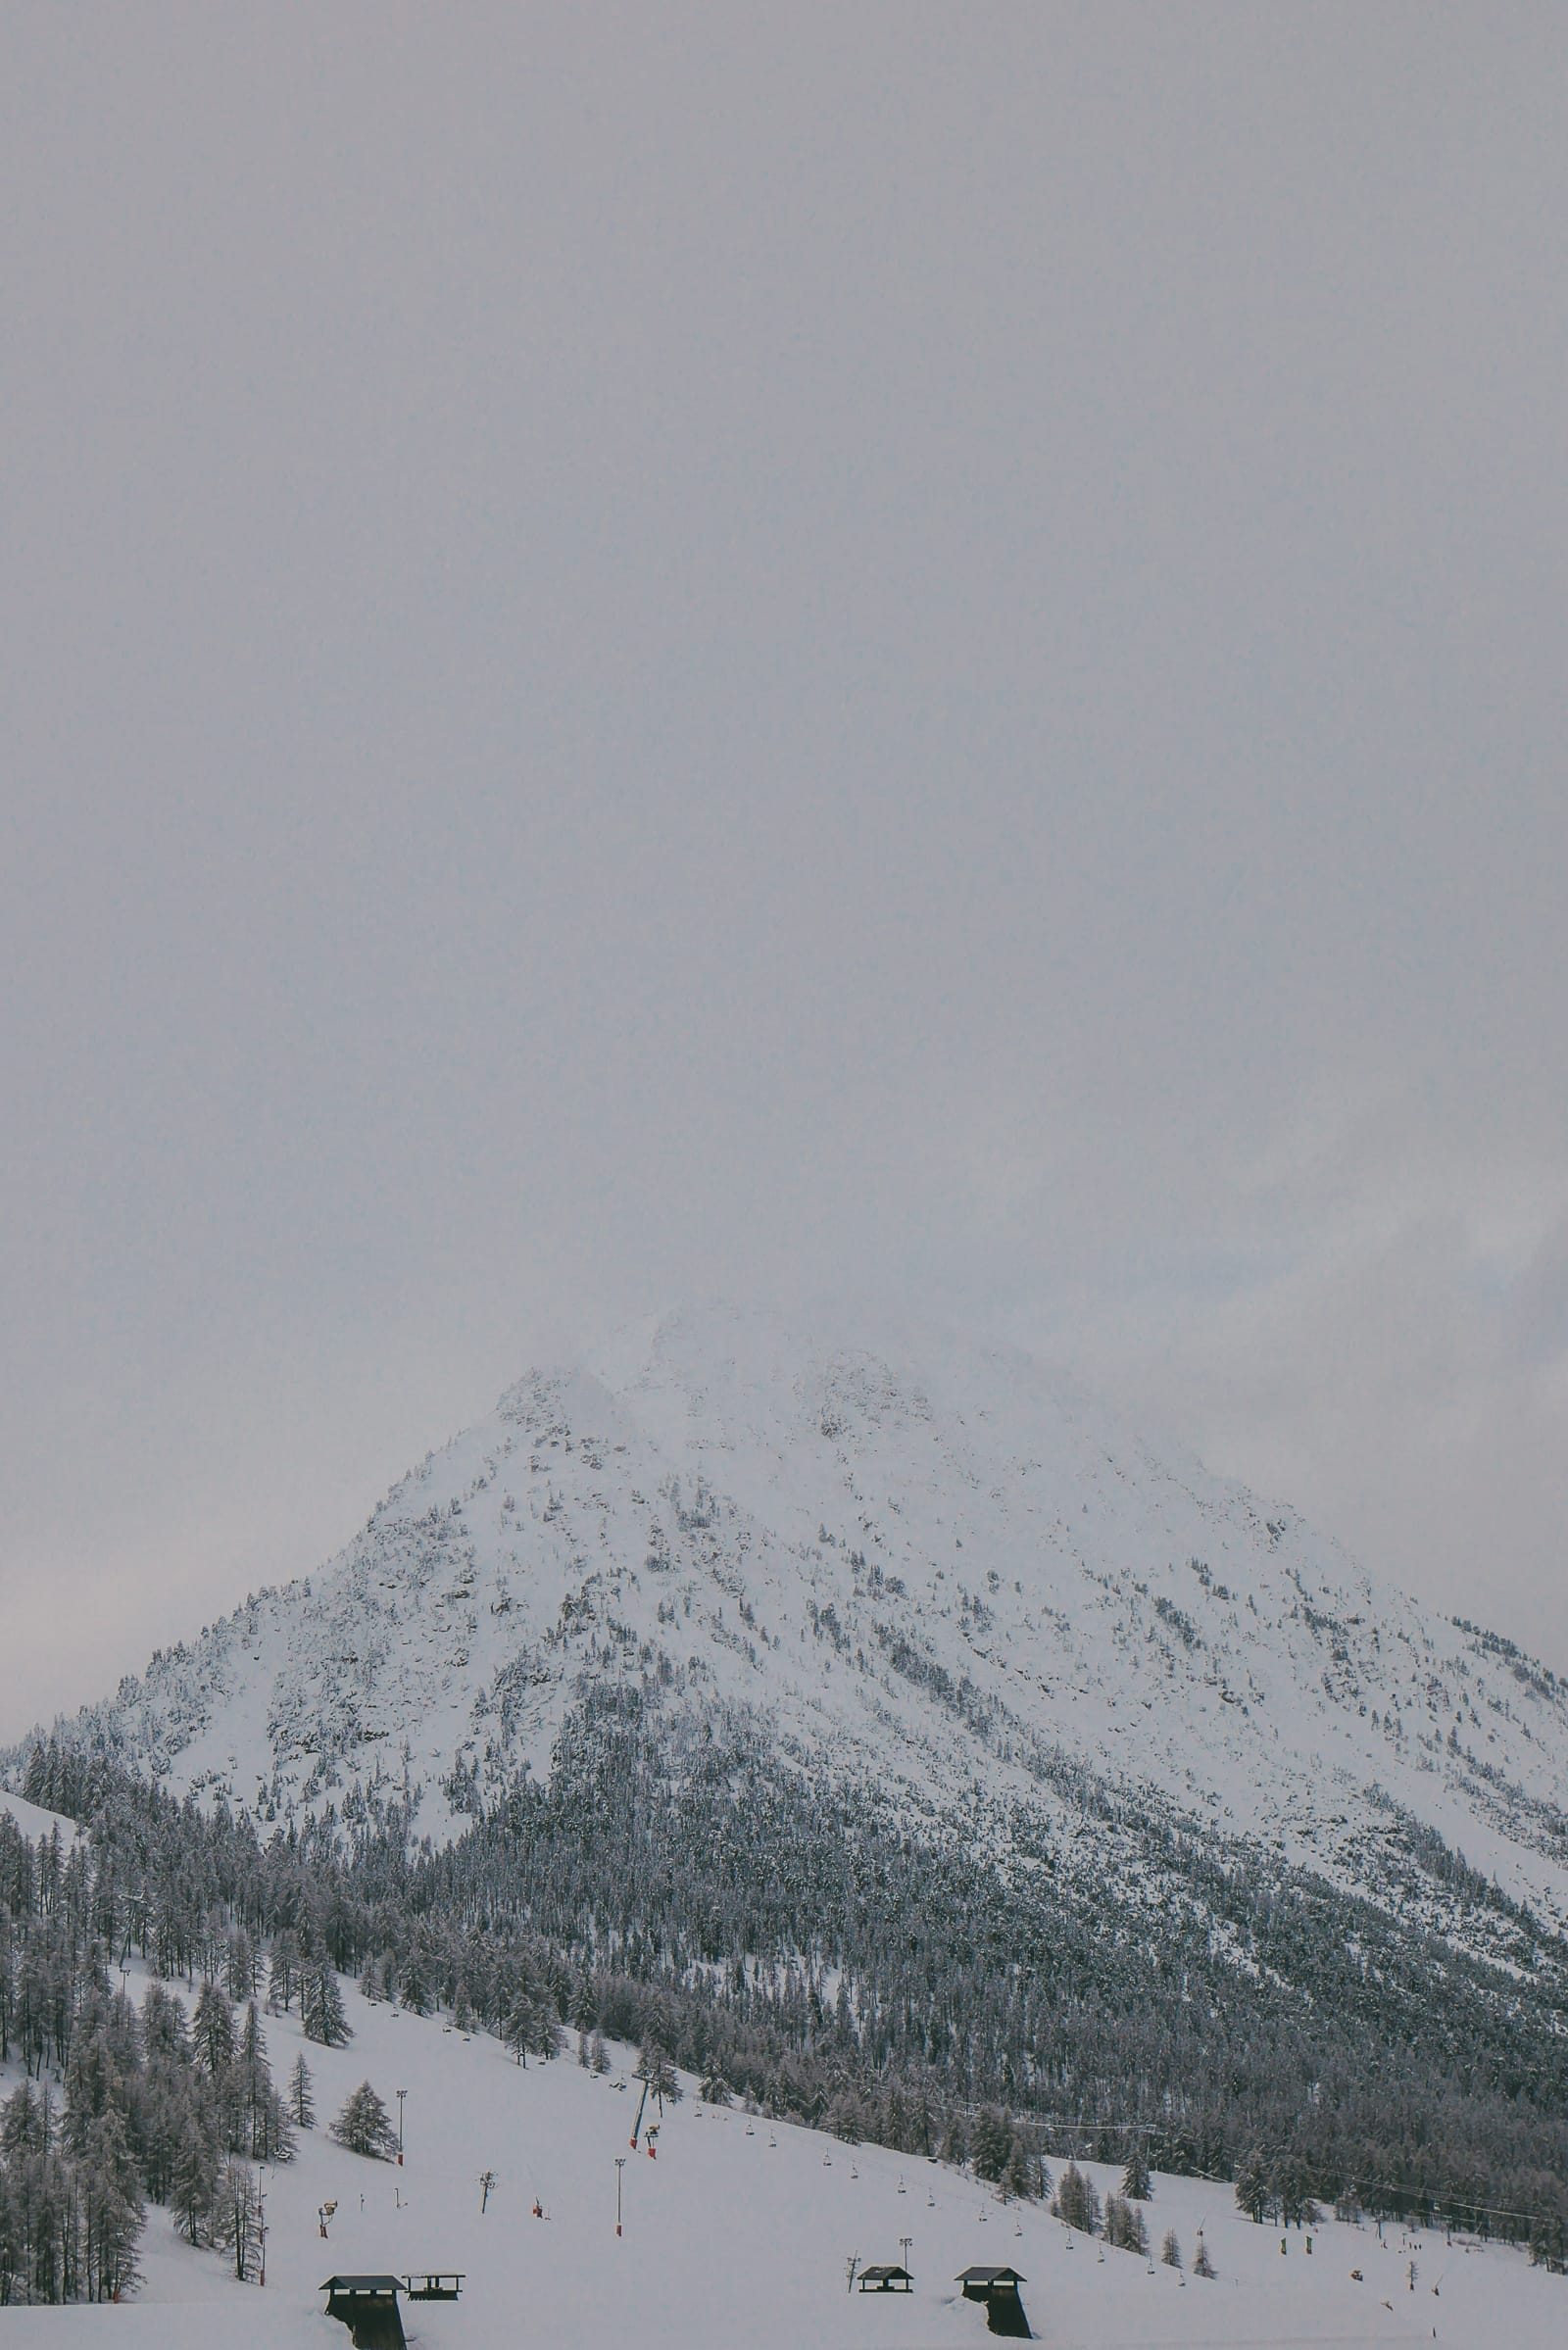 Briancon - The Highest Town In France And The Beautiful Ski Village Of Montgenevre (17)